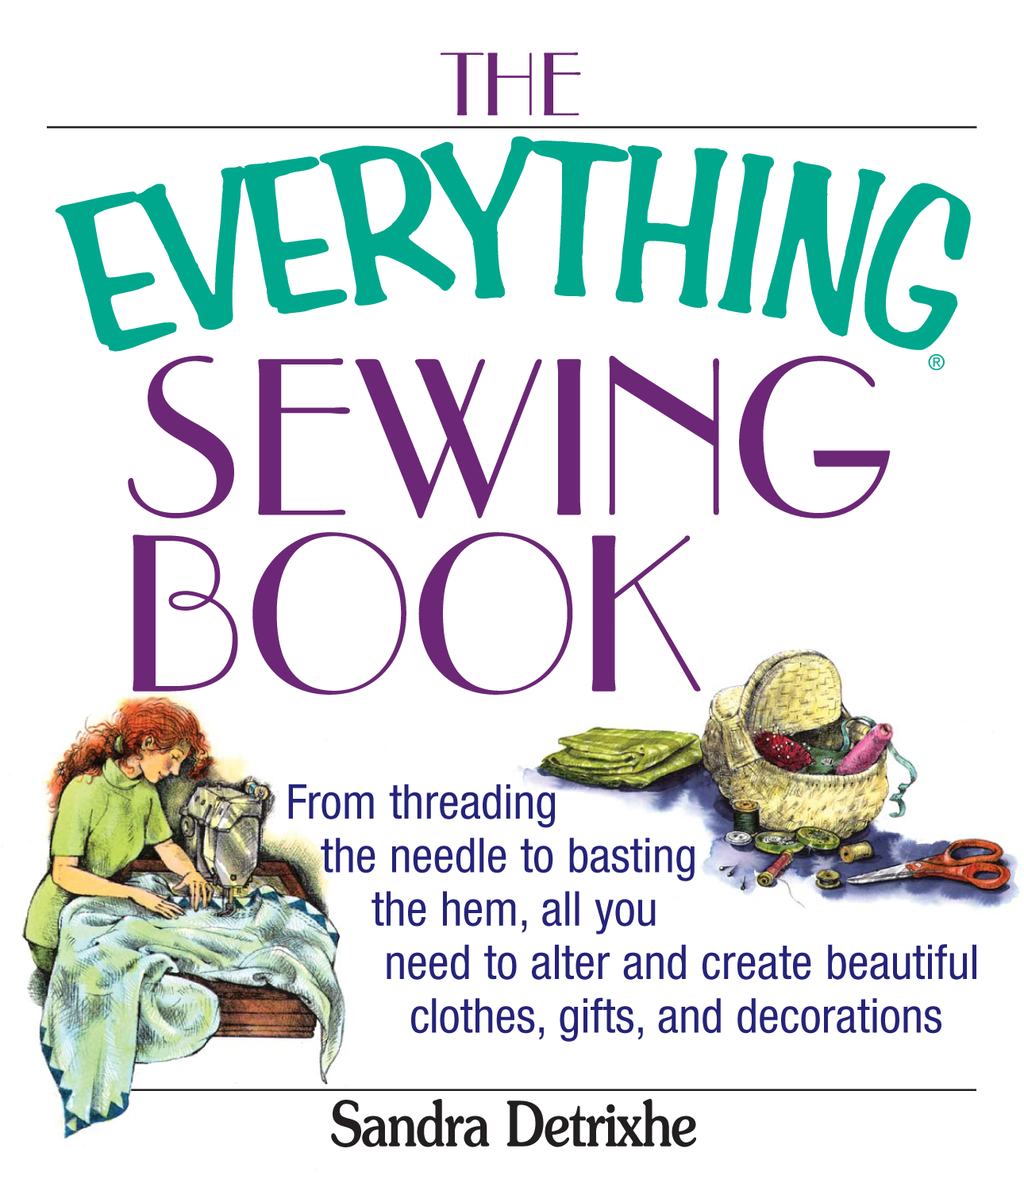 The Everything Sewing Book: From Threading the Needle to Basting the Hem, All You Need to Alter and Create Beautiful Clothes, Gifts, and Decorations By: Sandra Detrixhe